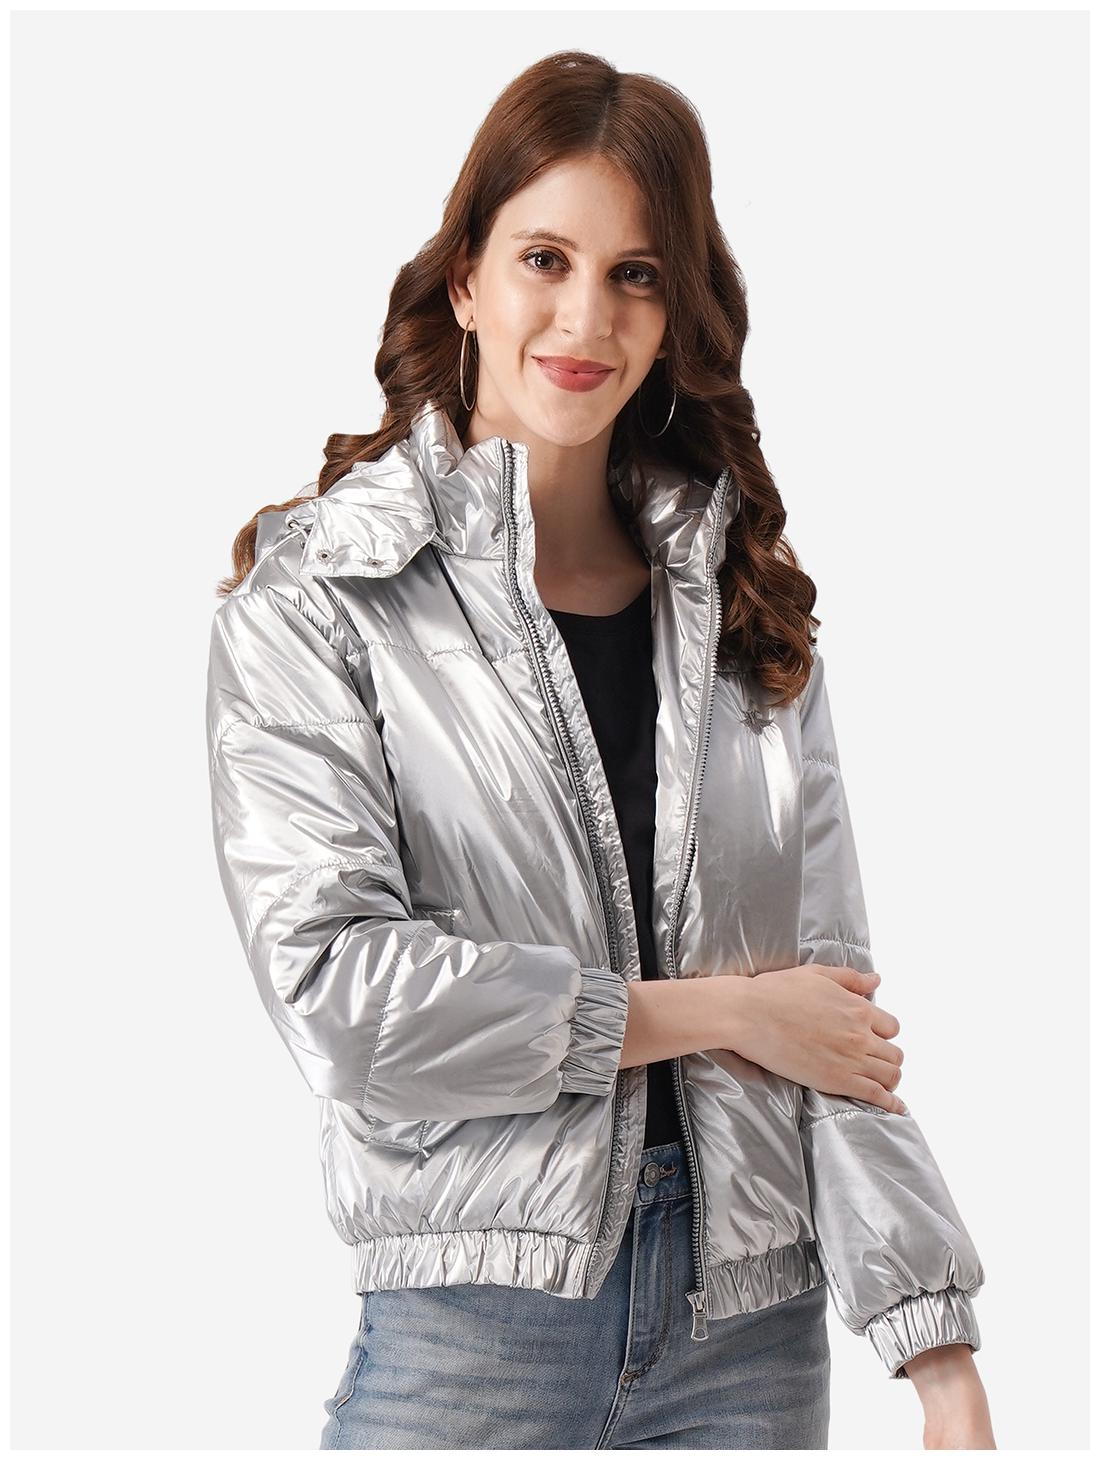 https://assetscdn1.paytm.com/images/catalog/product/A/AP/APPMODE-BY-RED-MIRZ250979DDD94CEB/1605185954293_0..jpg